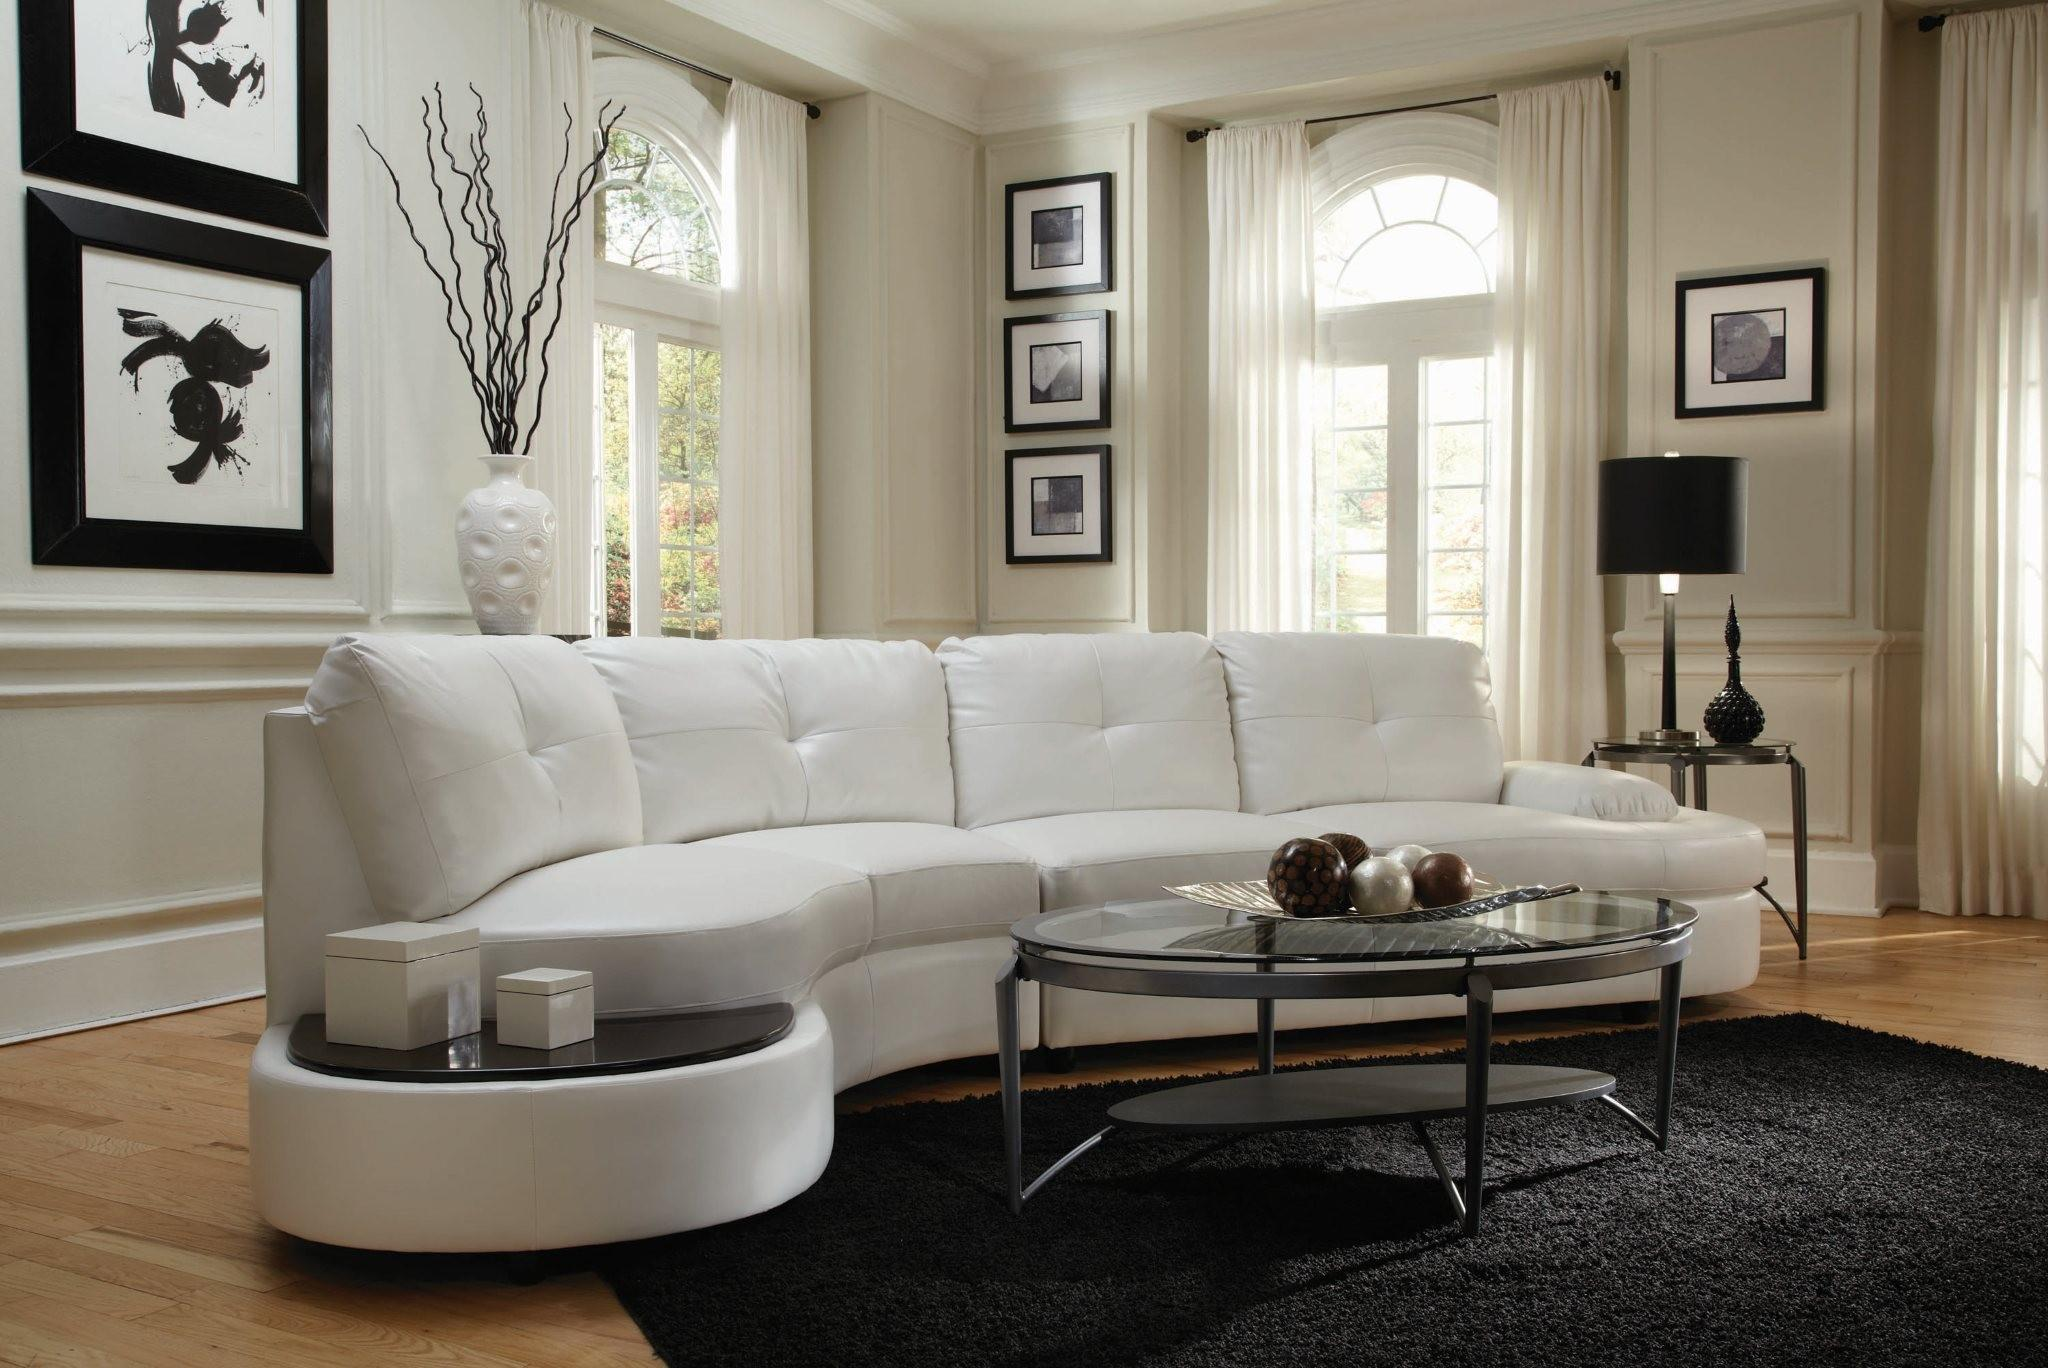 Cheap furniture stores in atlanta atlanta furniture for Affordable furniture atlanta